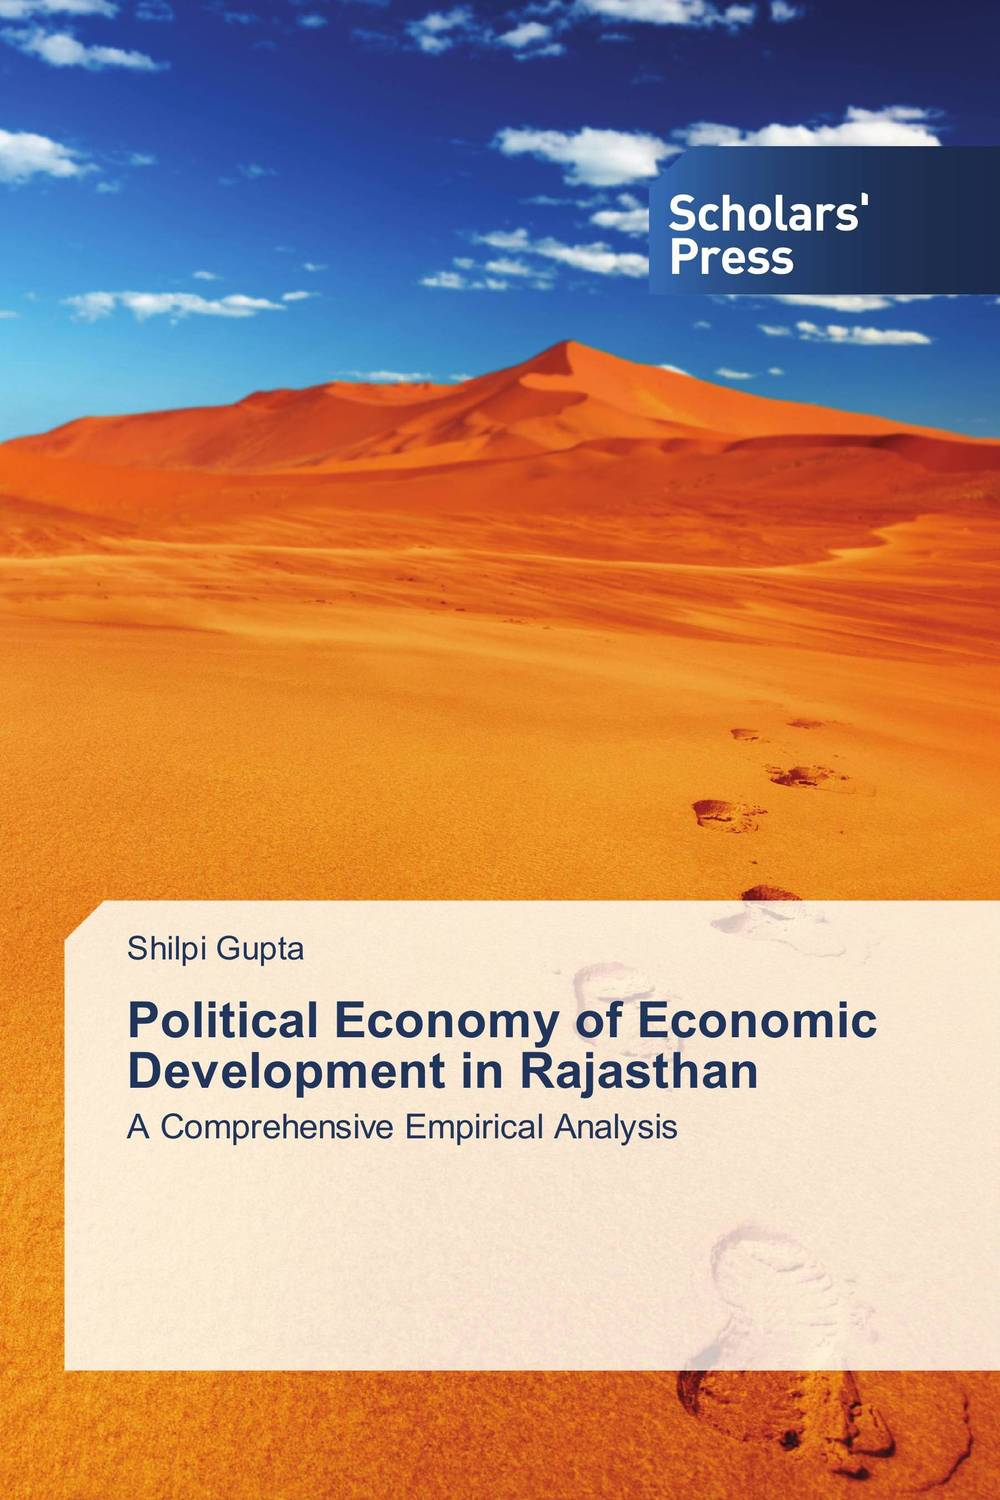 Political Economy of Economic Development in Rajasthan david wiedemer the aftershock investor a crash course in staying afloat in a sinking economy